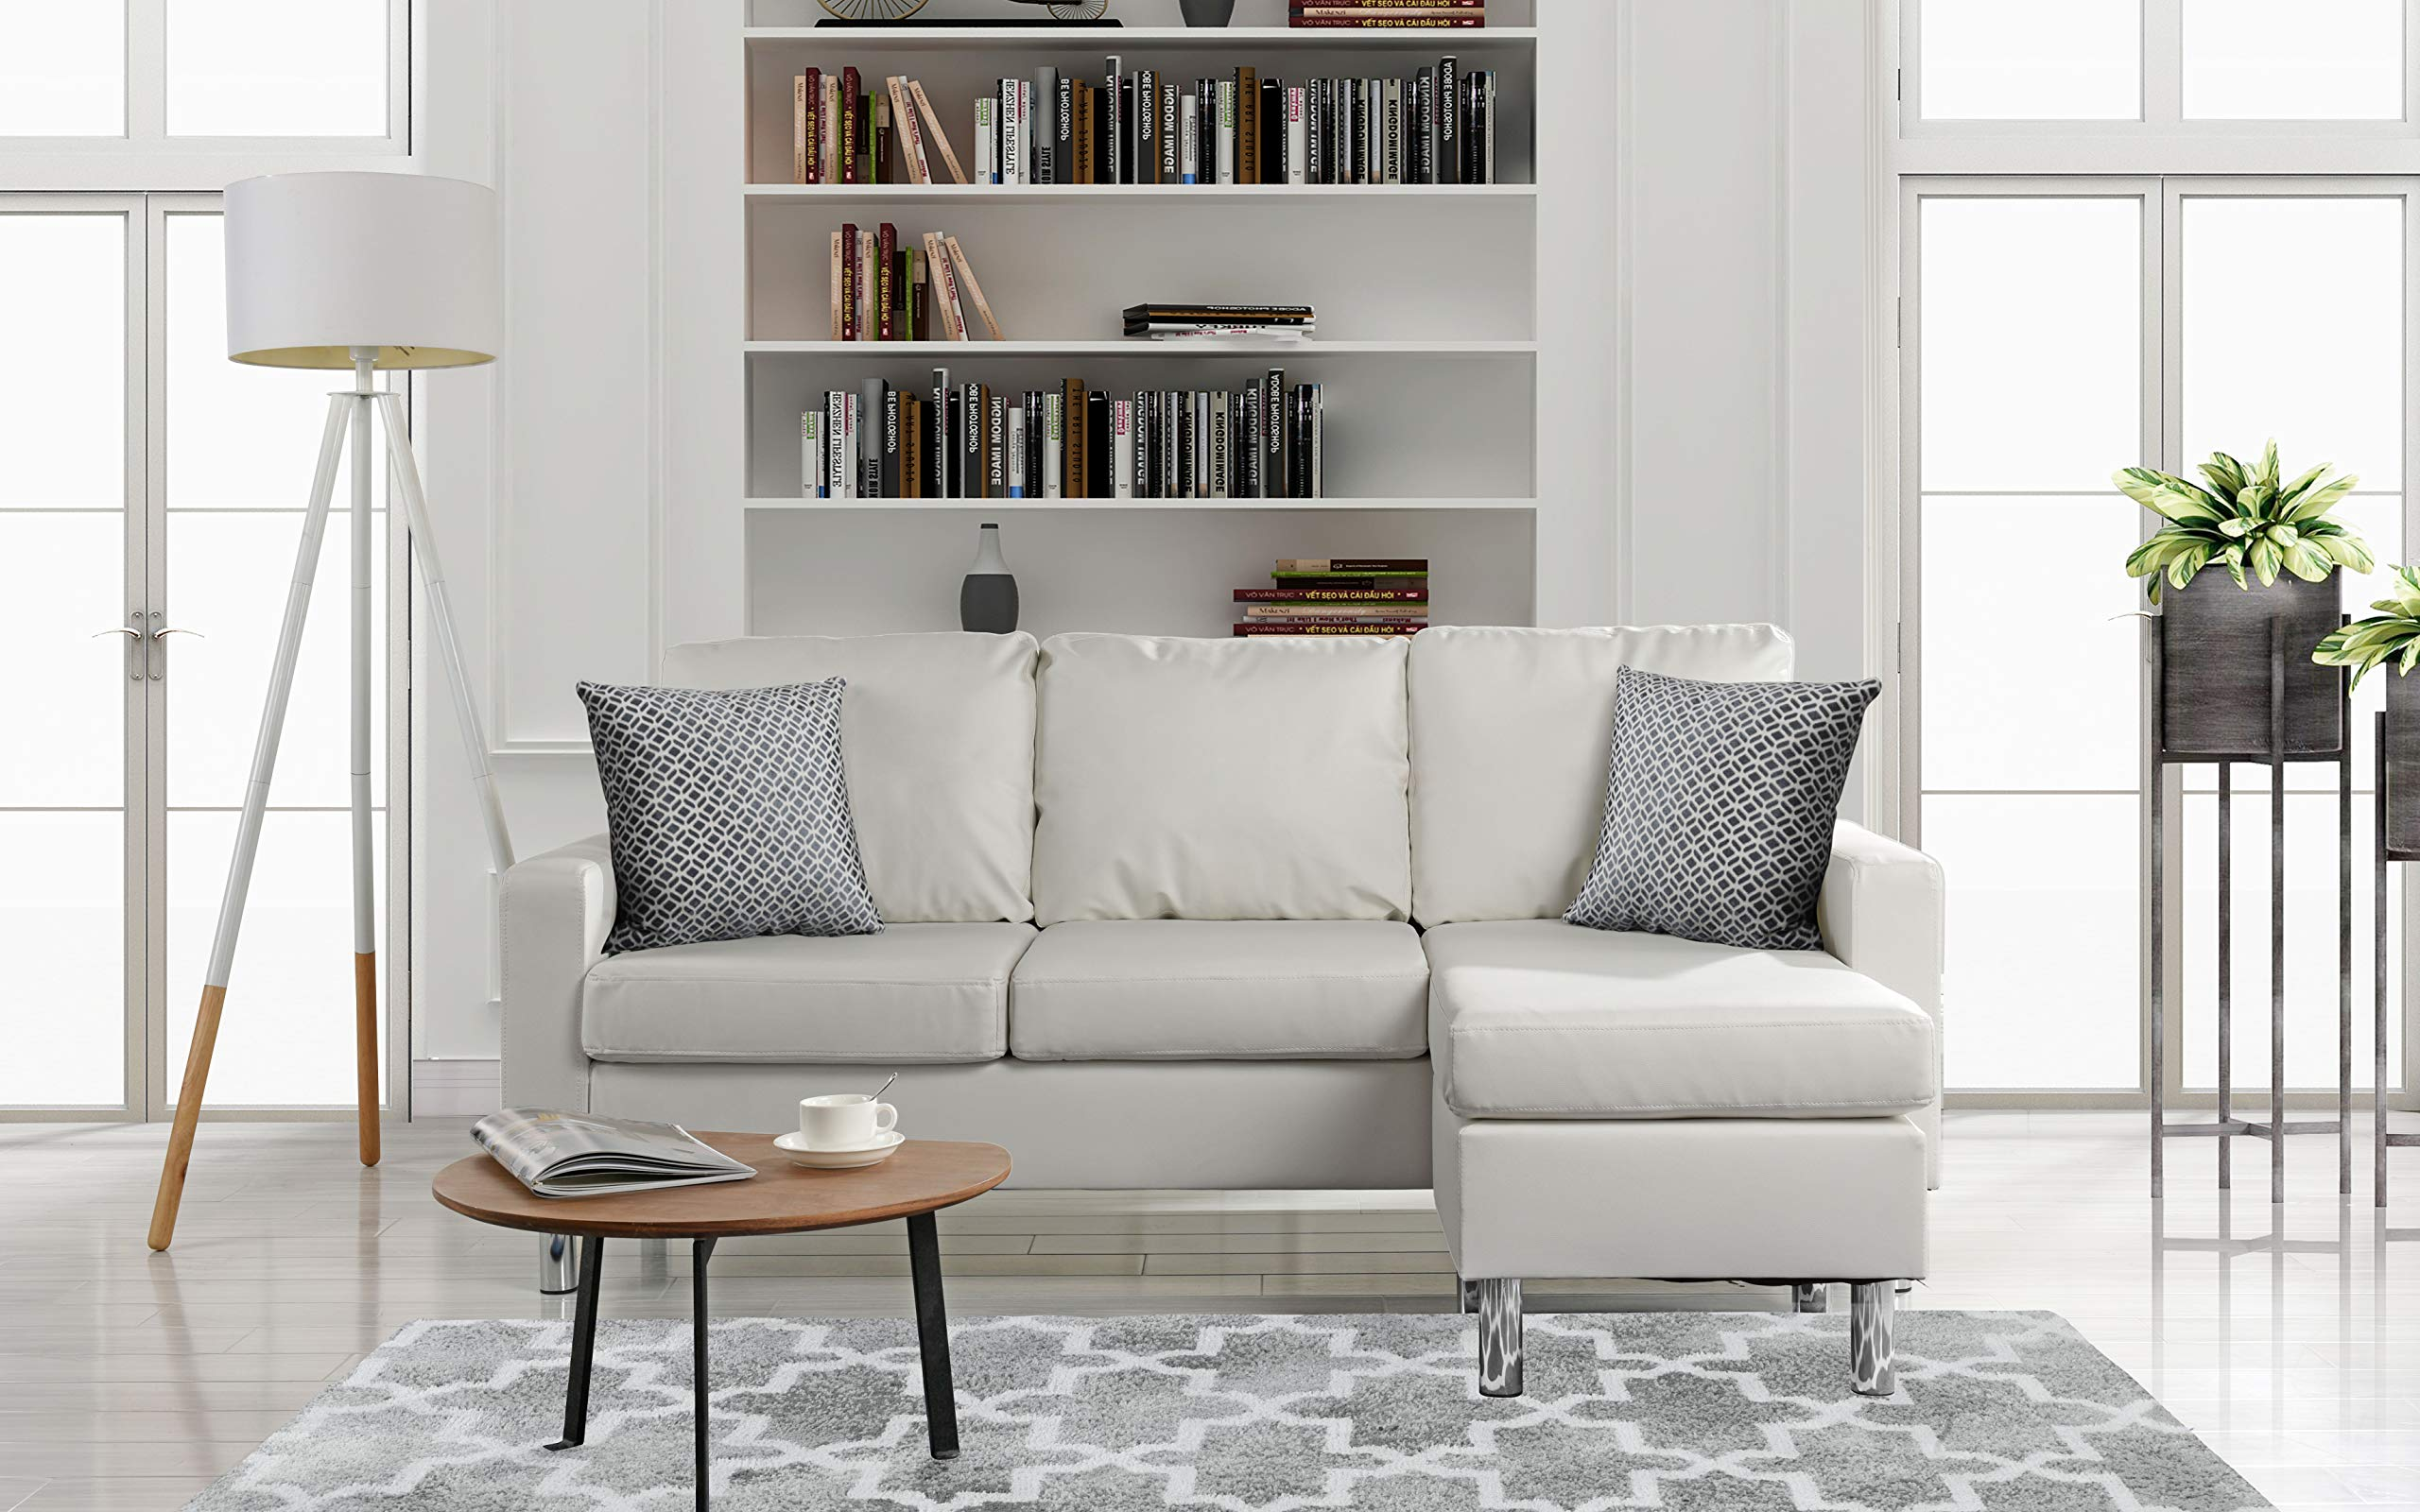 Modern Bonded Leather Sectional Sofa - Small Space Configurable Couch - White by DIVANO ROMA FURNITURE